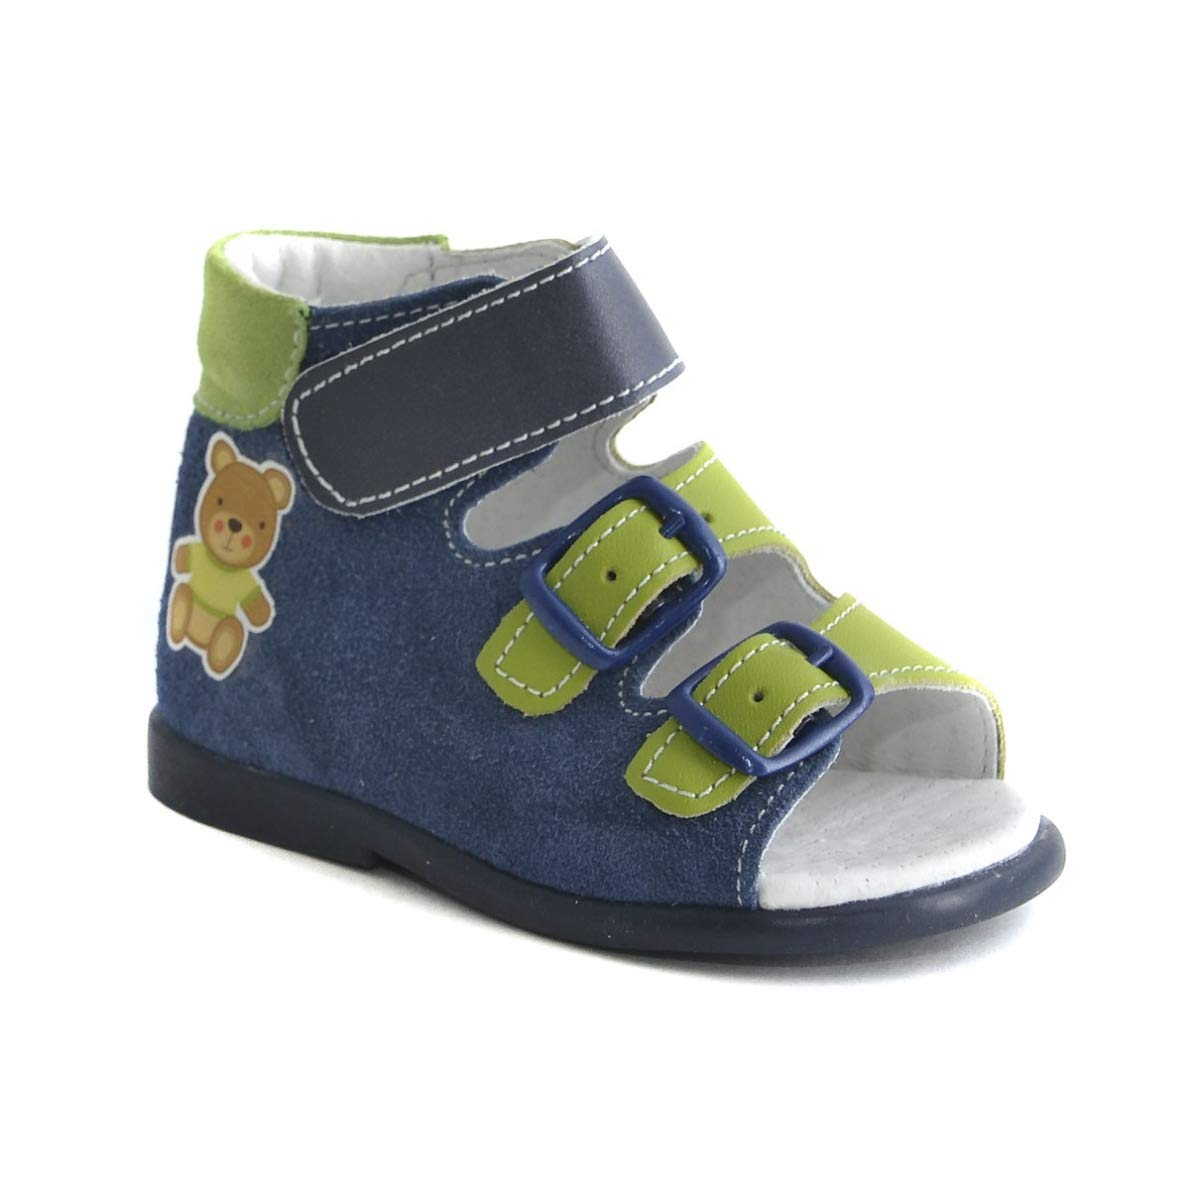 Orthopedic Sandals First Step for Boys and Girls - Genuine Leather - High Sole (5, Dark Blue) by Skorohod